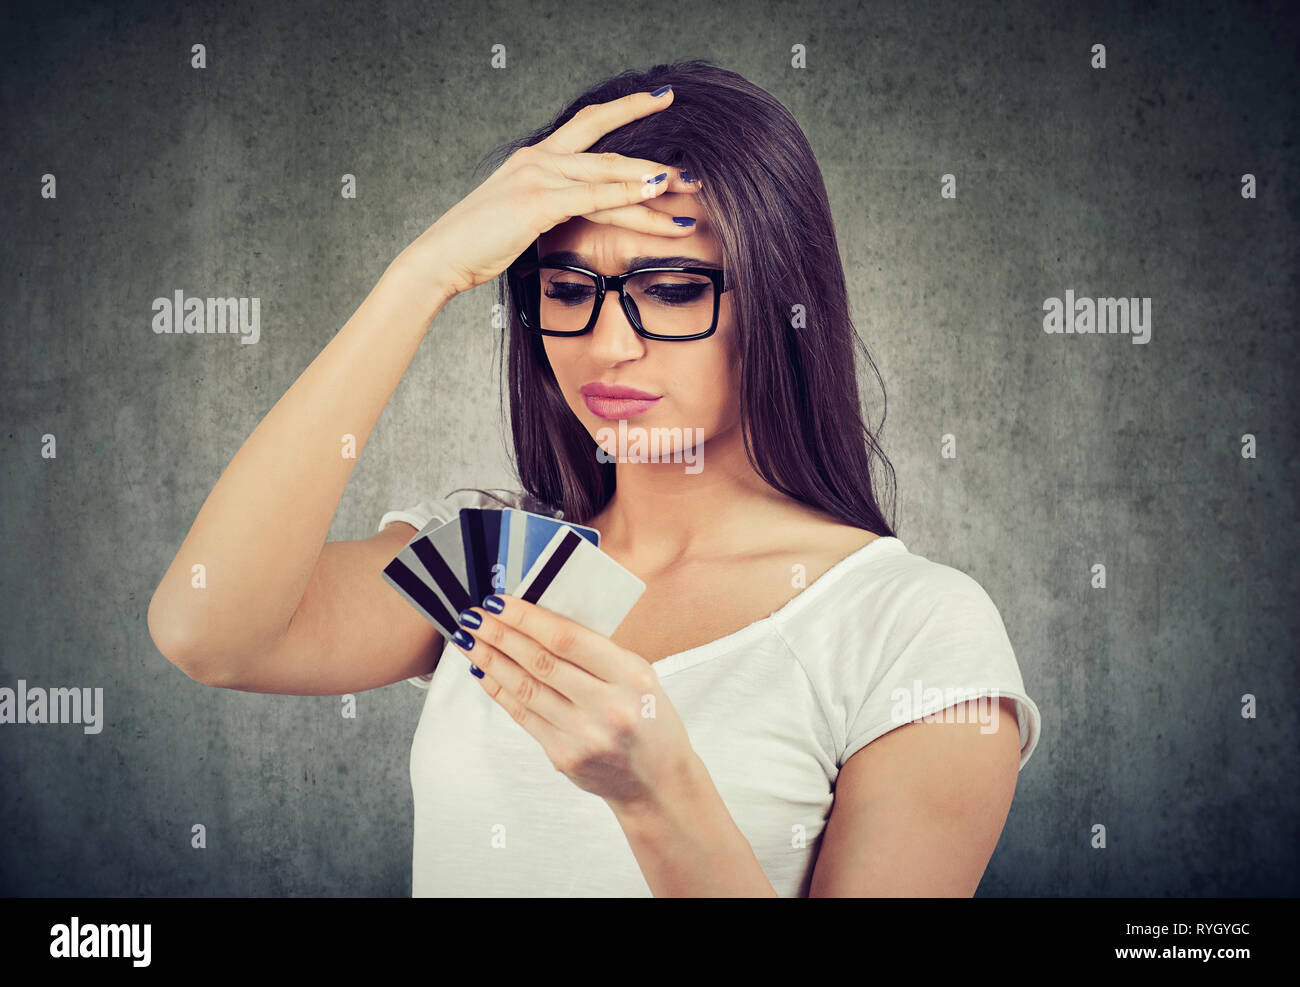 Confused stressed woman looking at too many credit cards full of debt - Stock Image